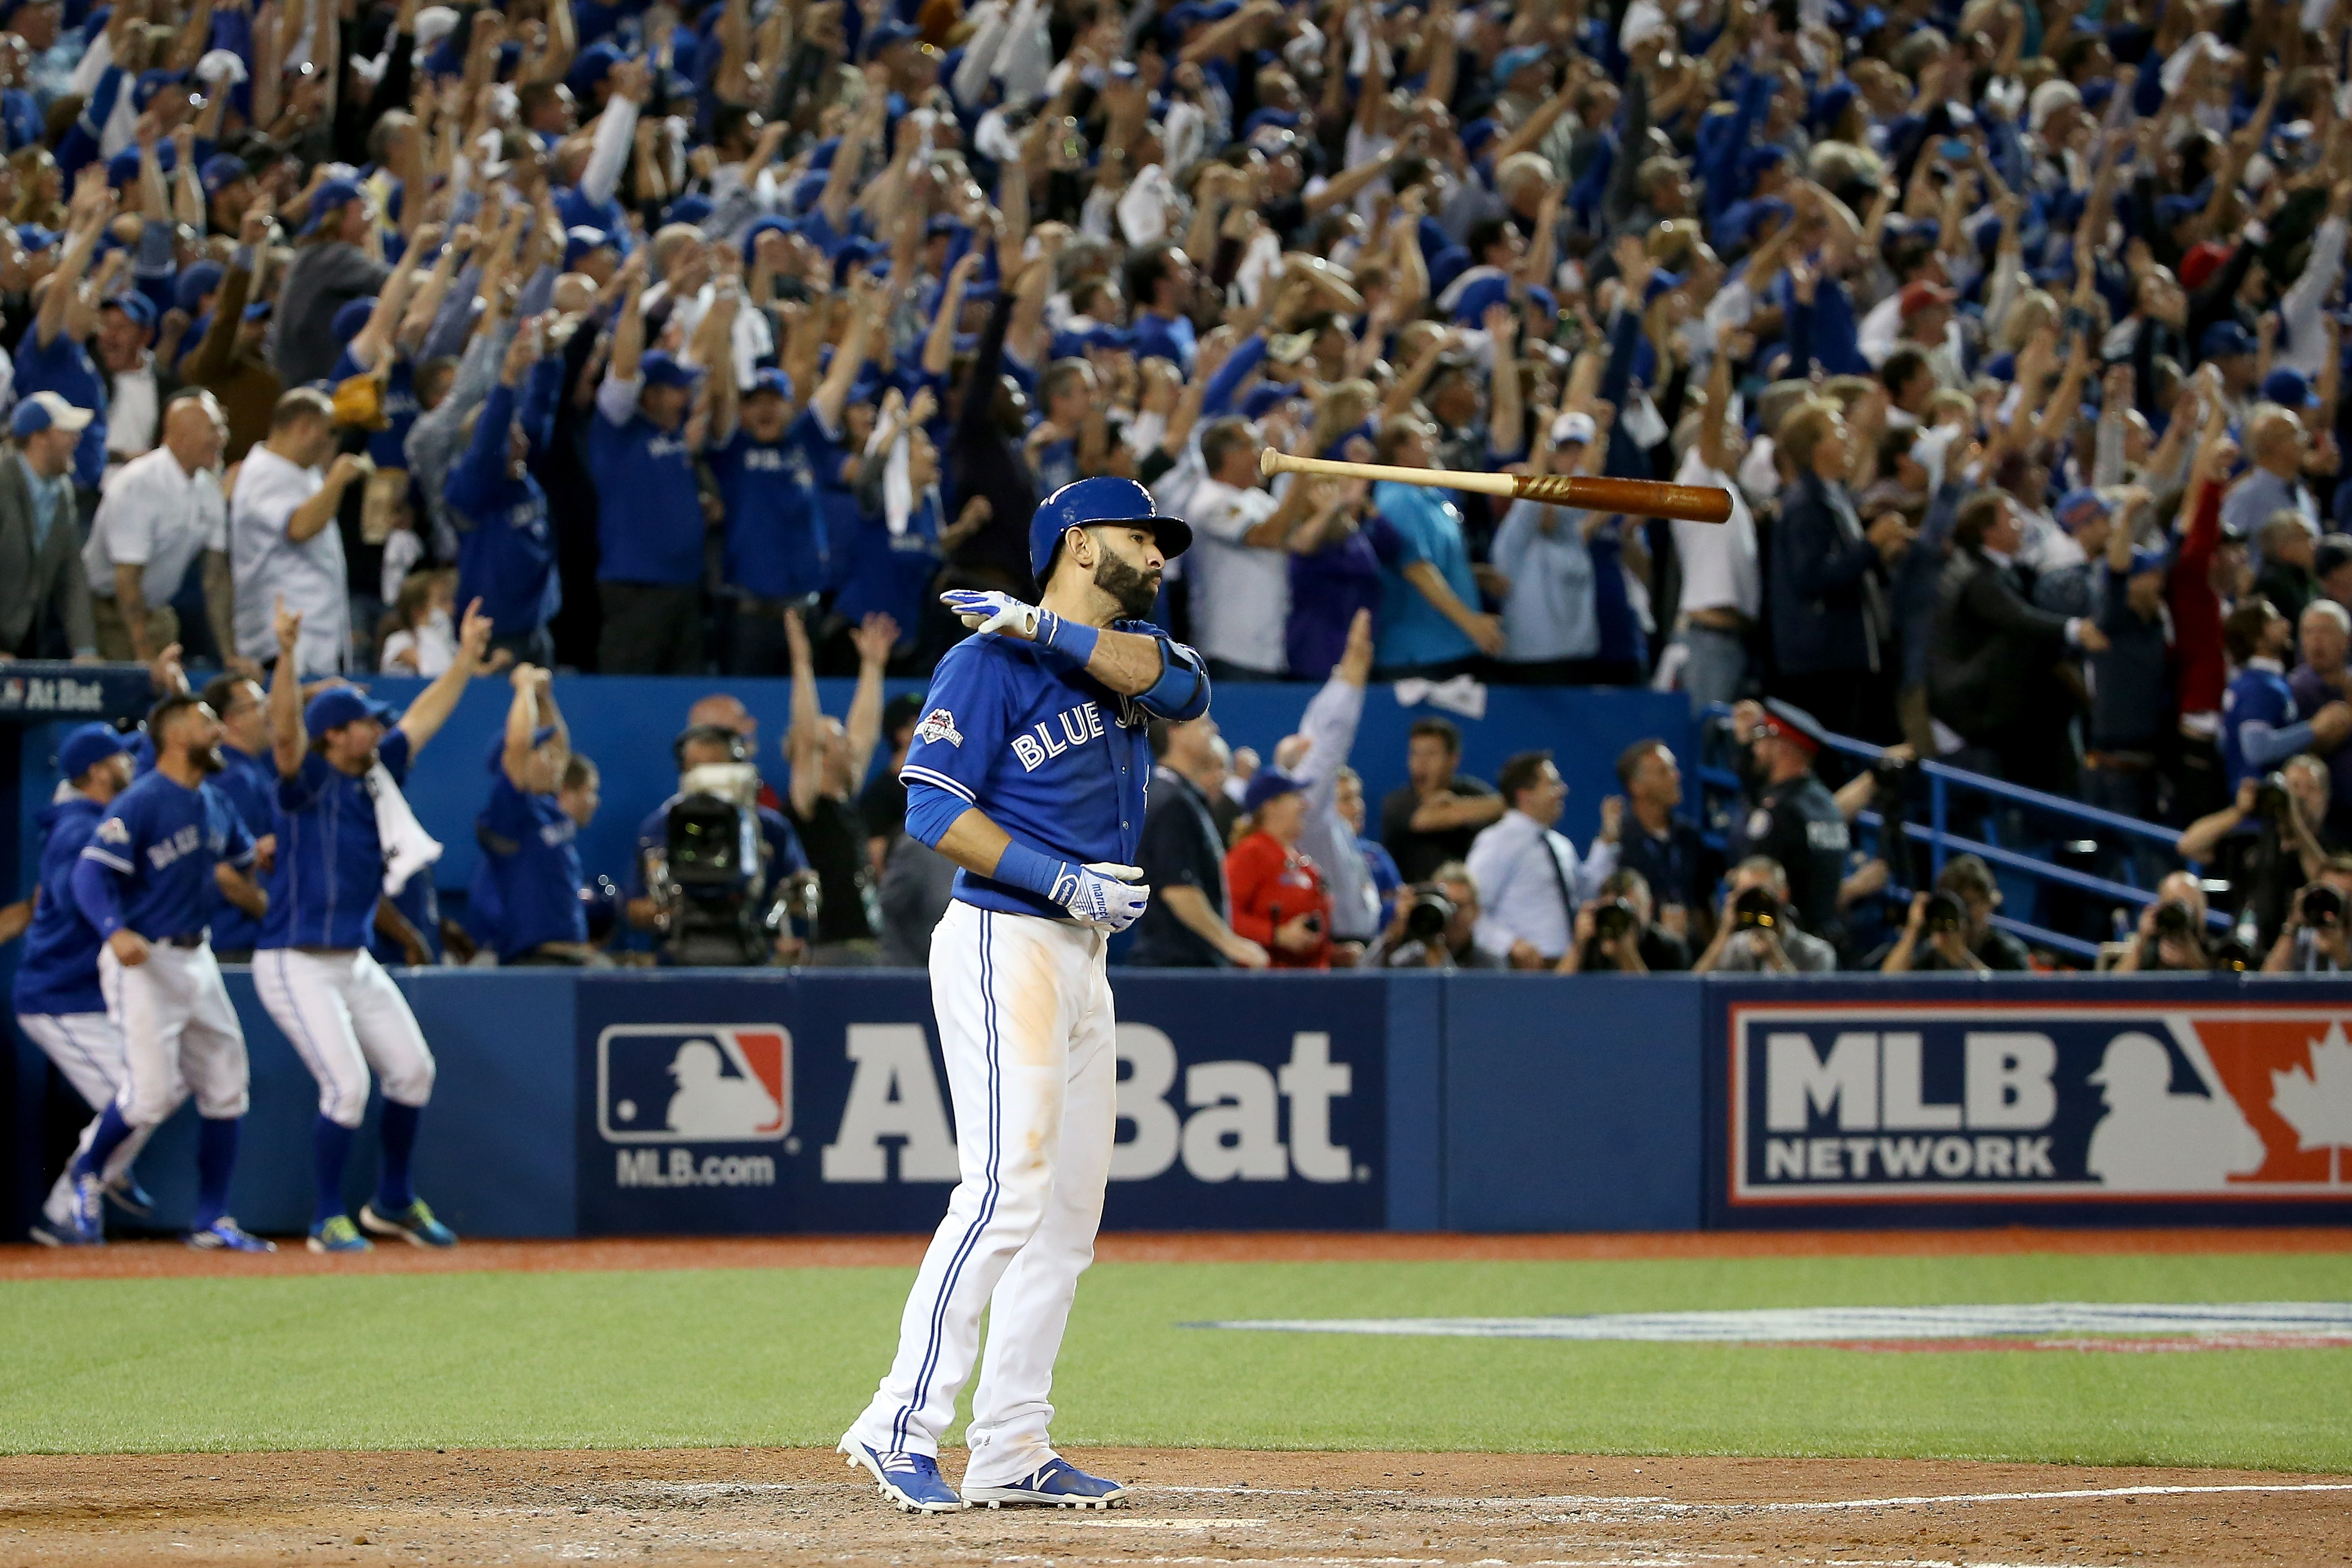 Jose Bautista of the Toronto Blue Jays flips his bat up in the air after he hits a three-run home run in the seventh inning against the Texas Rangers in game five of the American League Division Series at Rogers Centre on October 14, 2015 in Toronto, Canada.